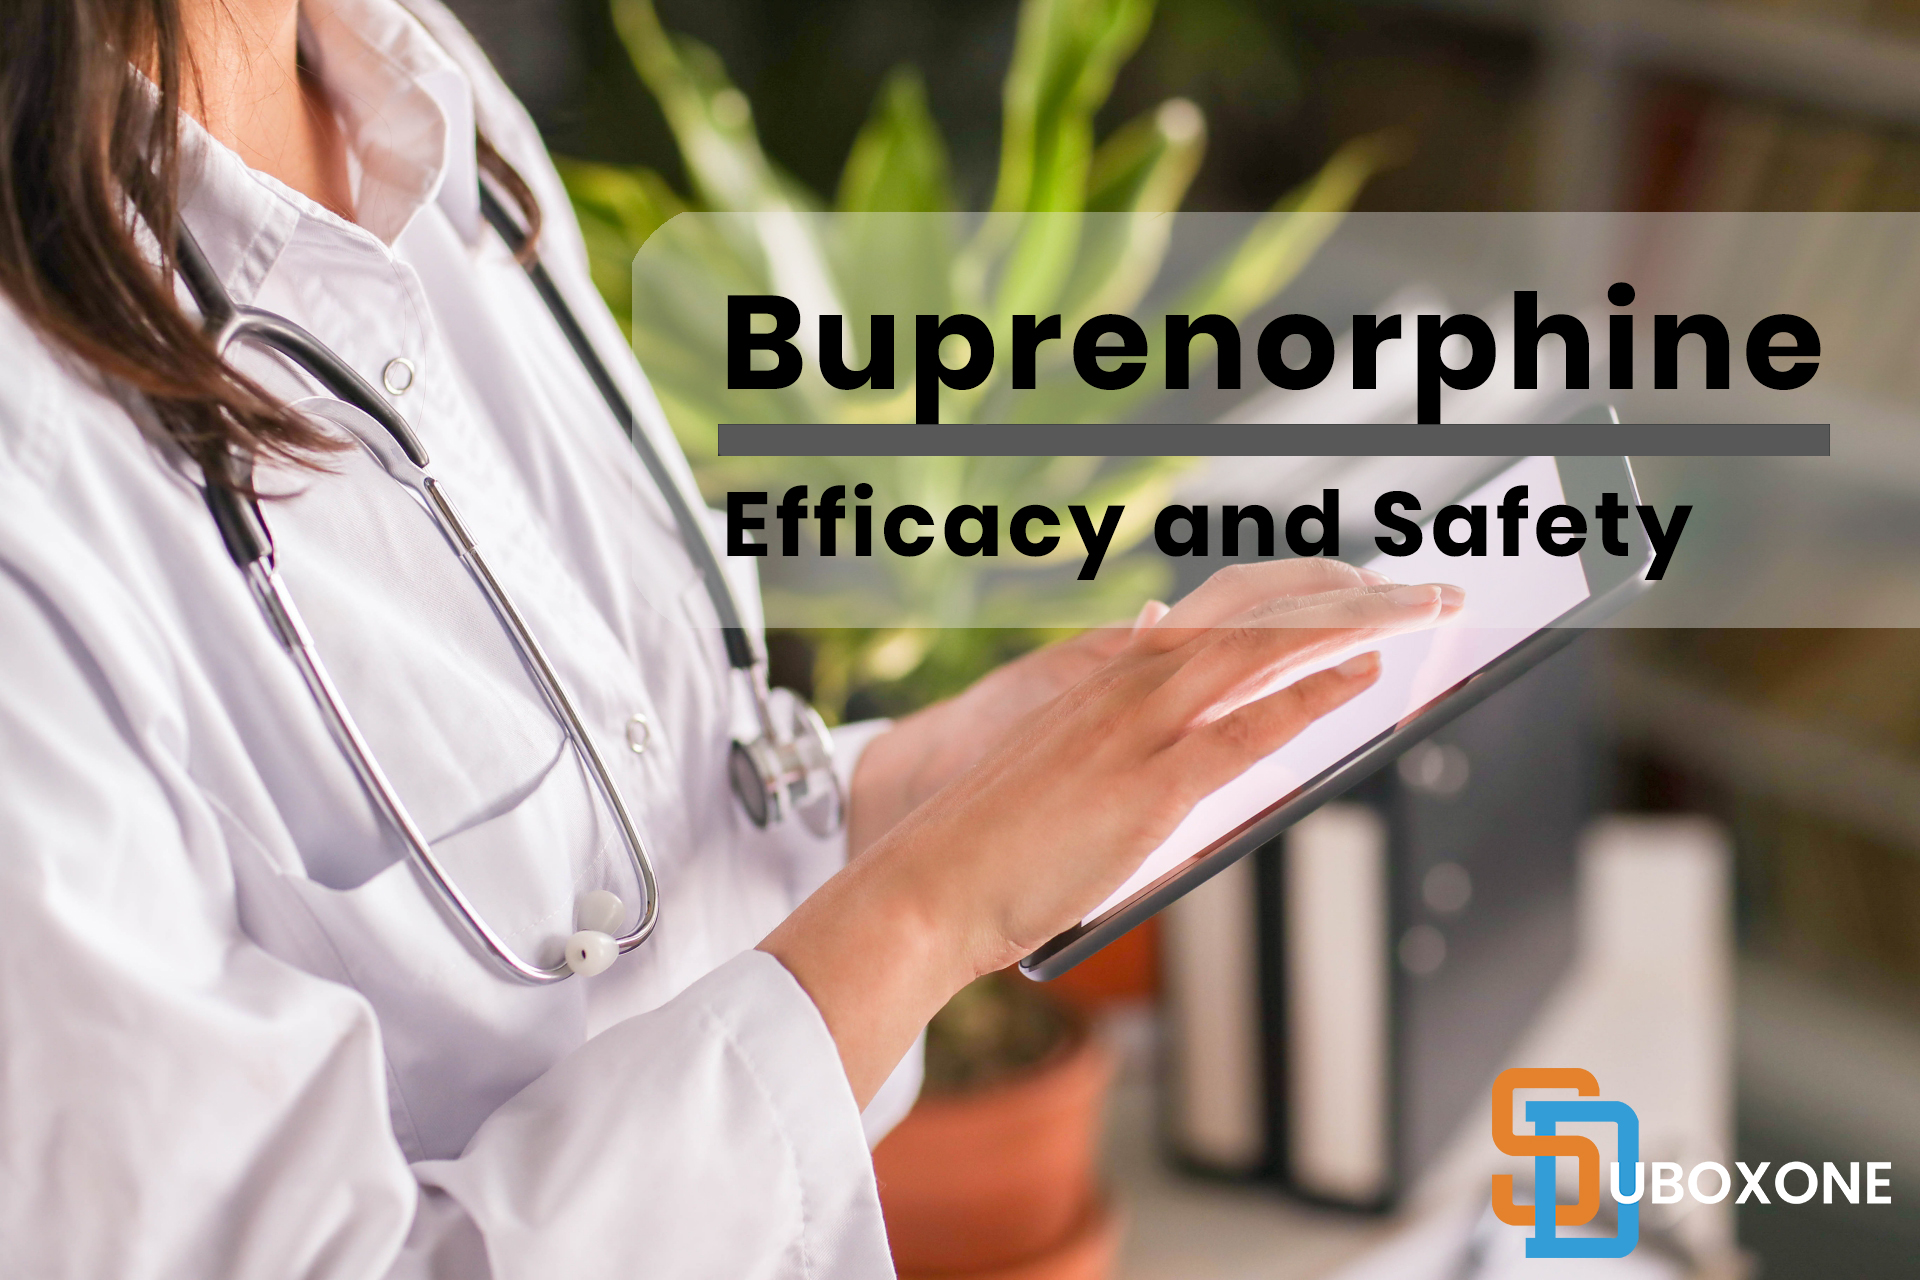 buprenorphine efficacy and safety